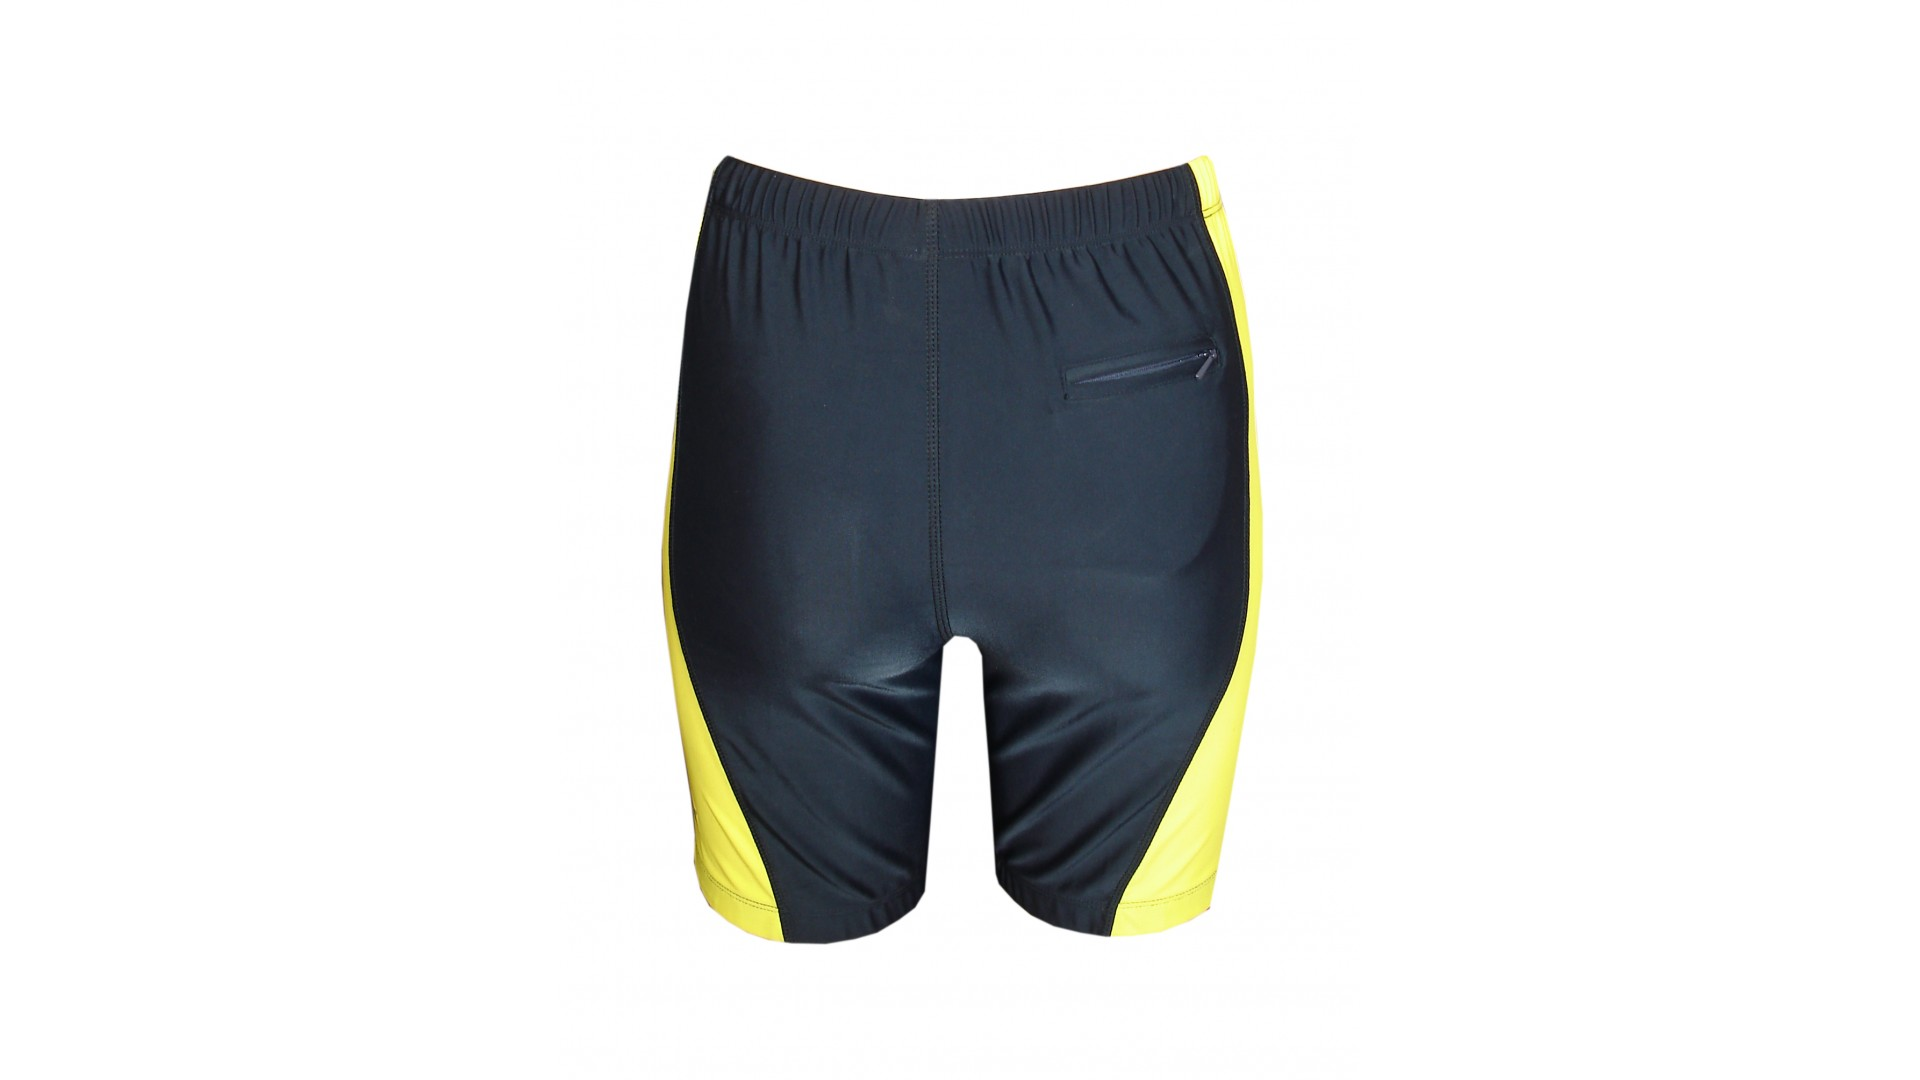 Трусы Ironman Short Tight Unisex black/yelloy